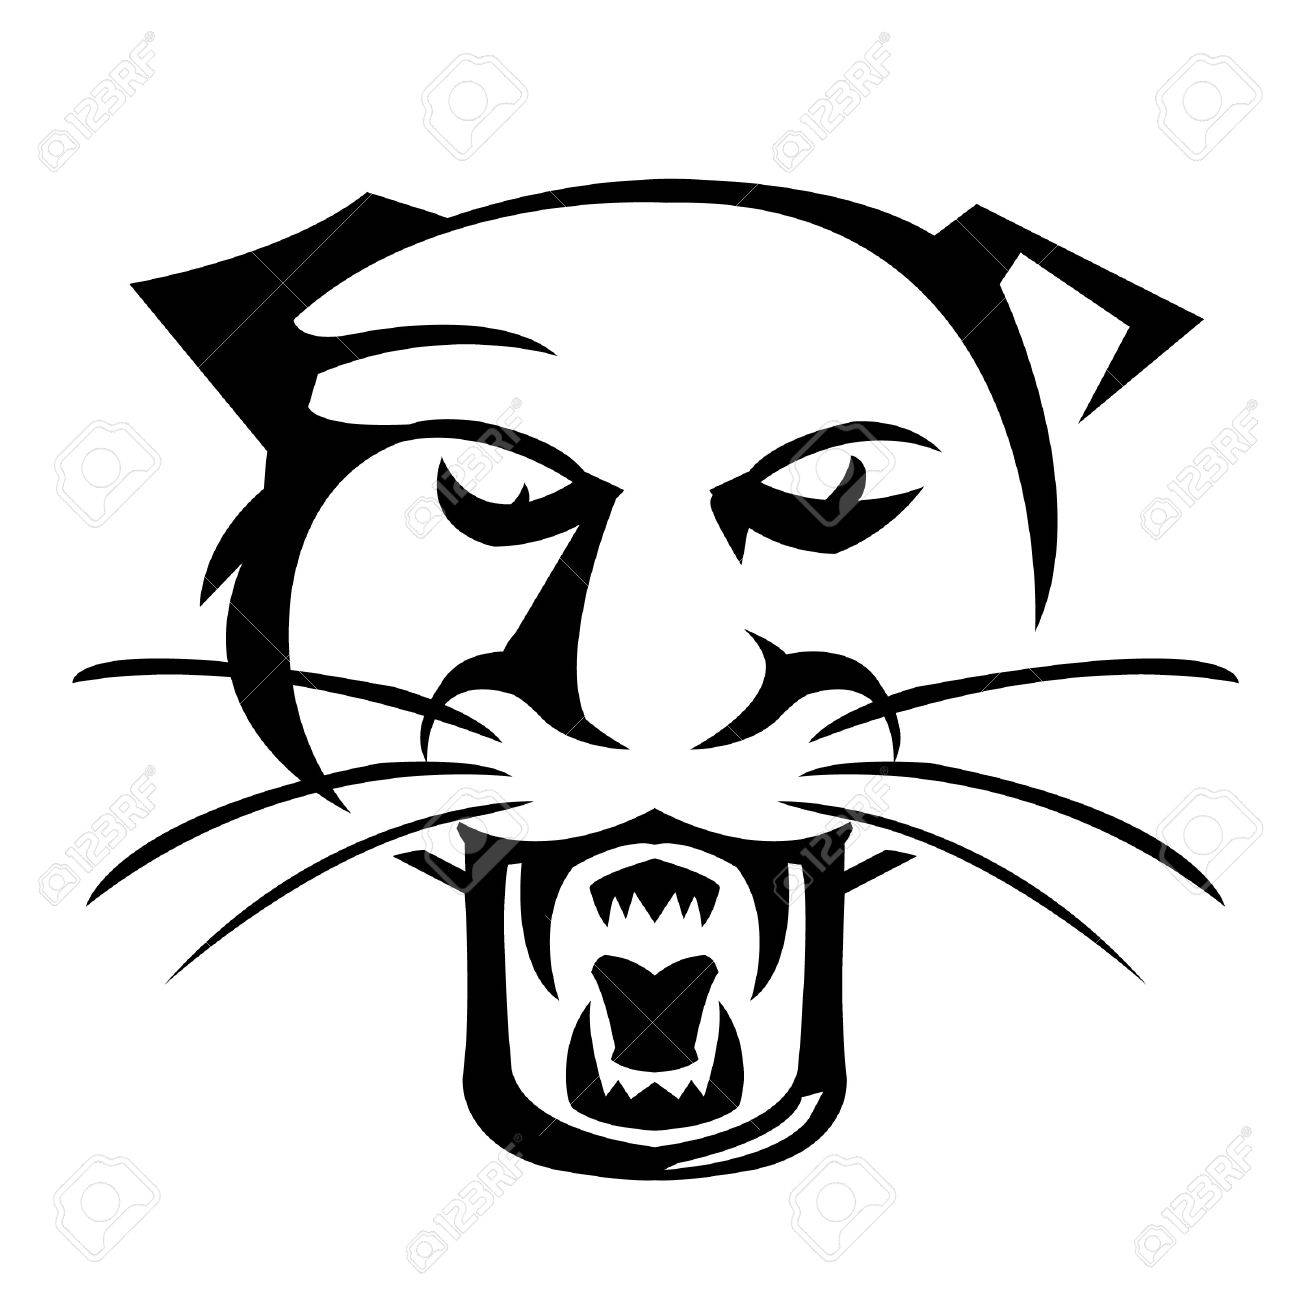 1300x1296 Panther Illustrator Royalty Free Cliparts, Vectors, And Stock